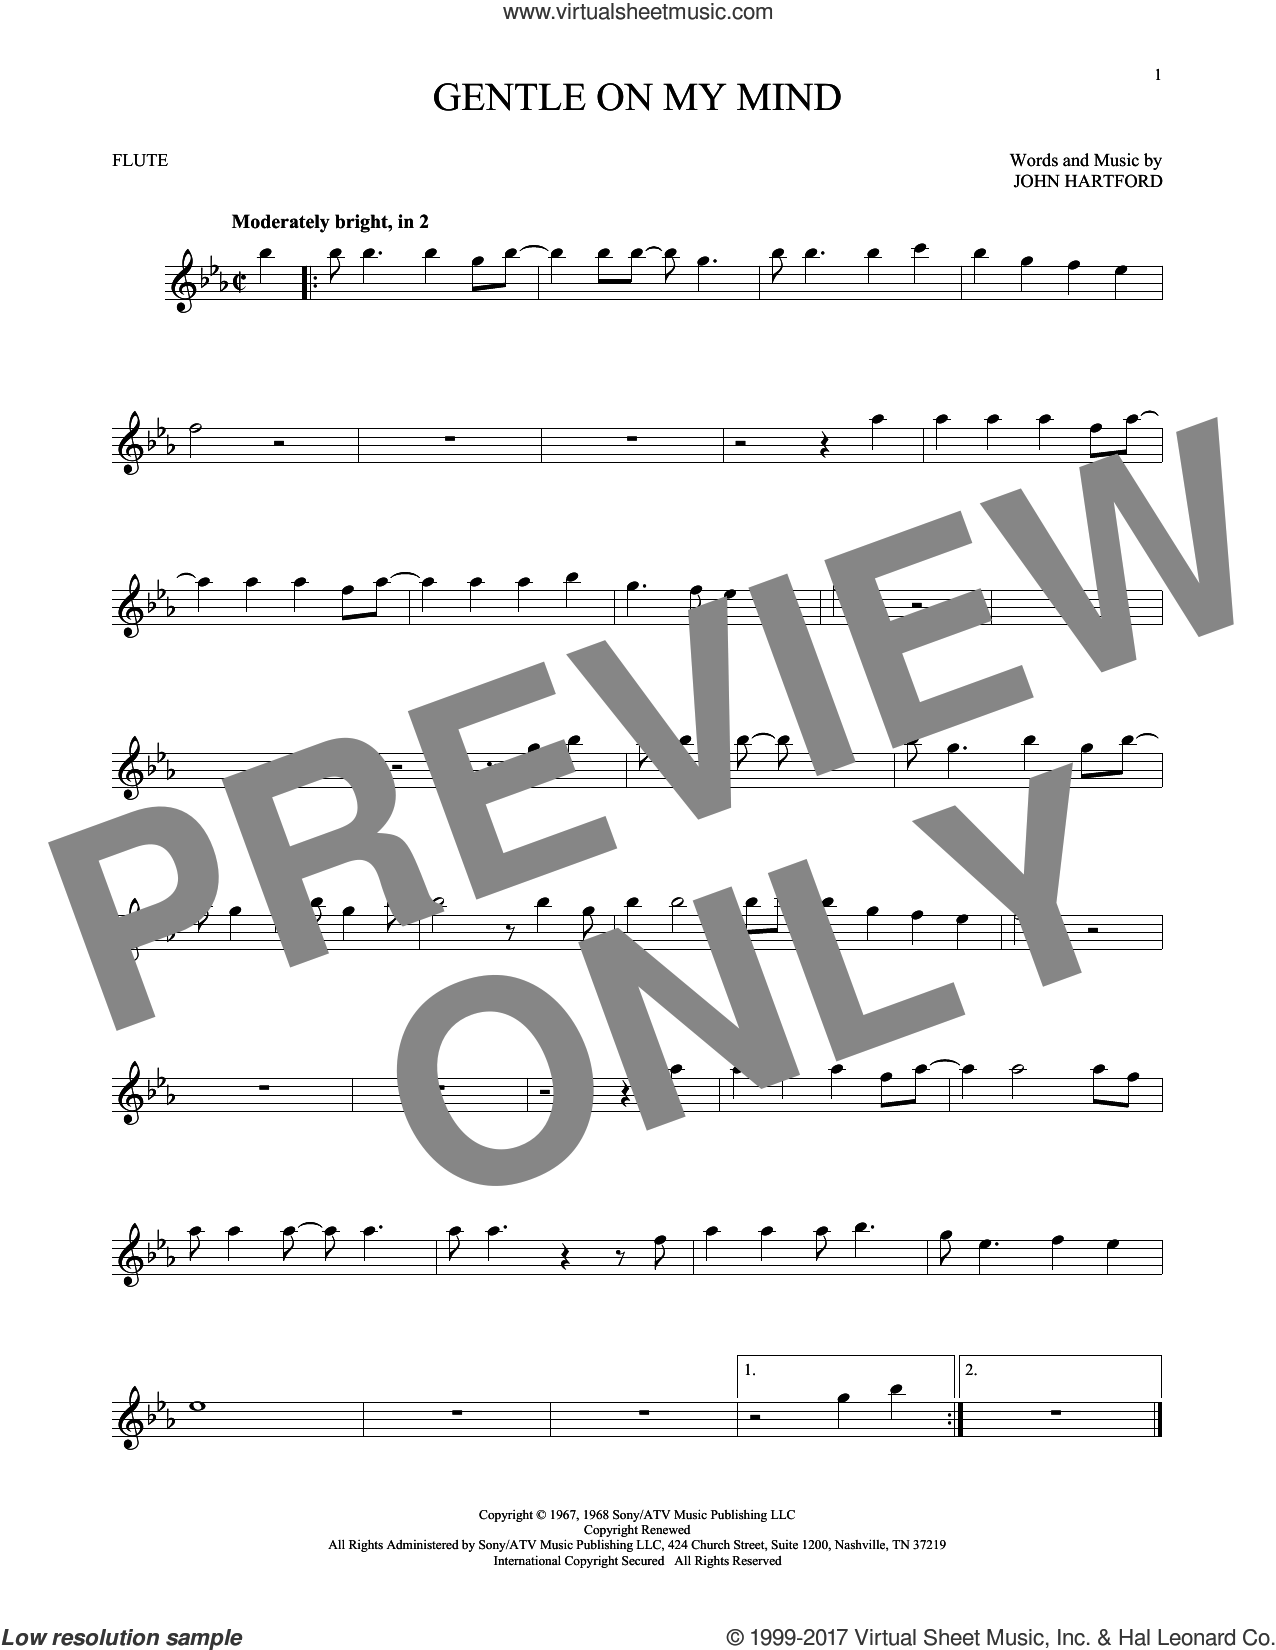 Gentle On My Mind sheet music for flute solo by Glen Campbell and John Hartford, intermediate